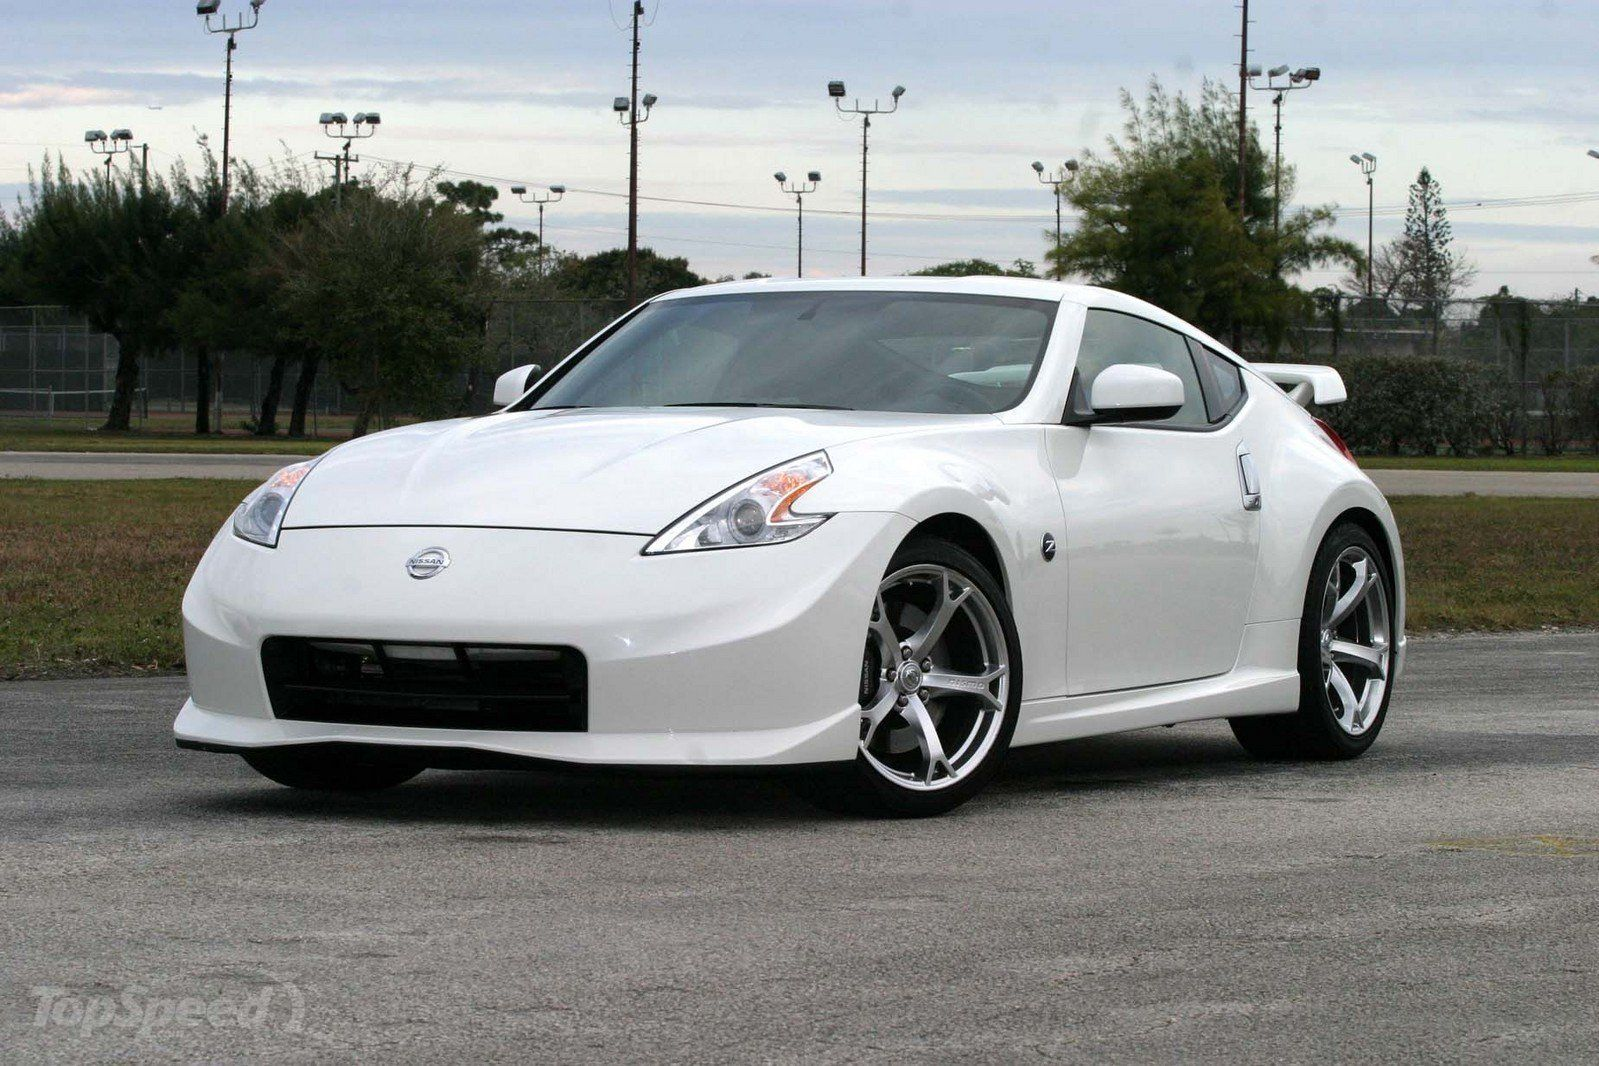 Nissan 370z nismo driven car reviews pinterest nissan 370z nissan and dream cars